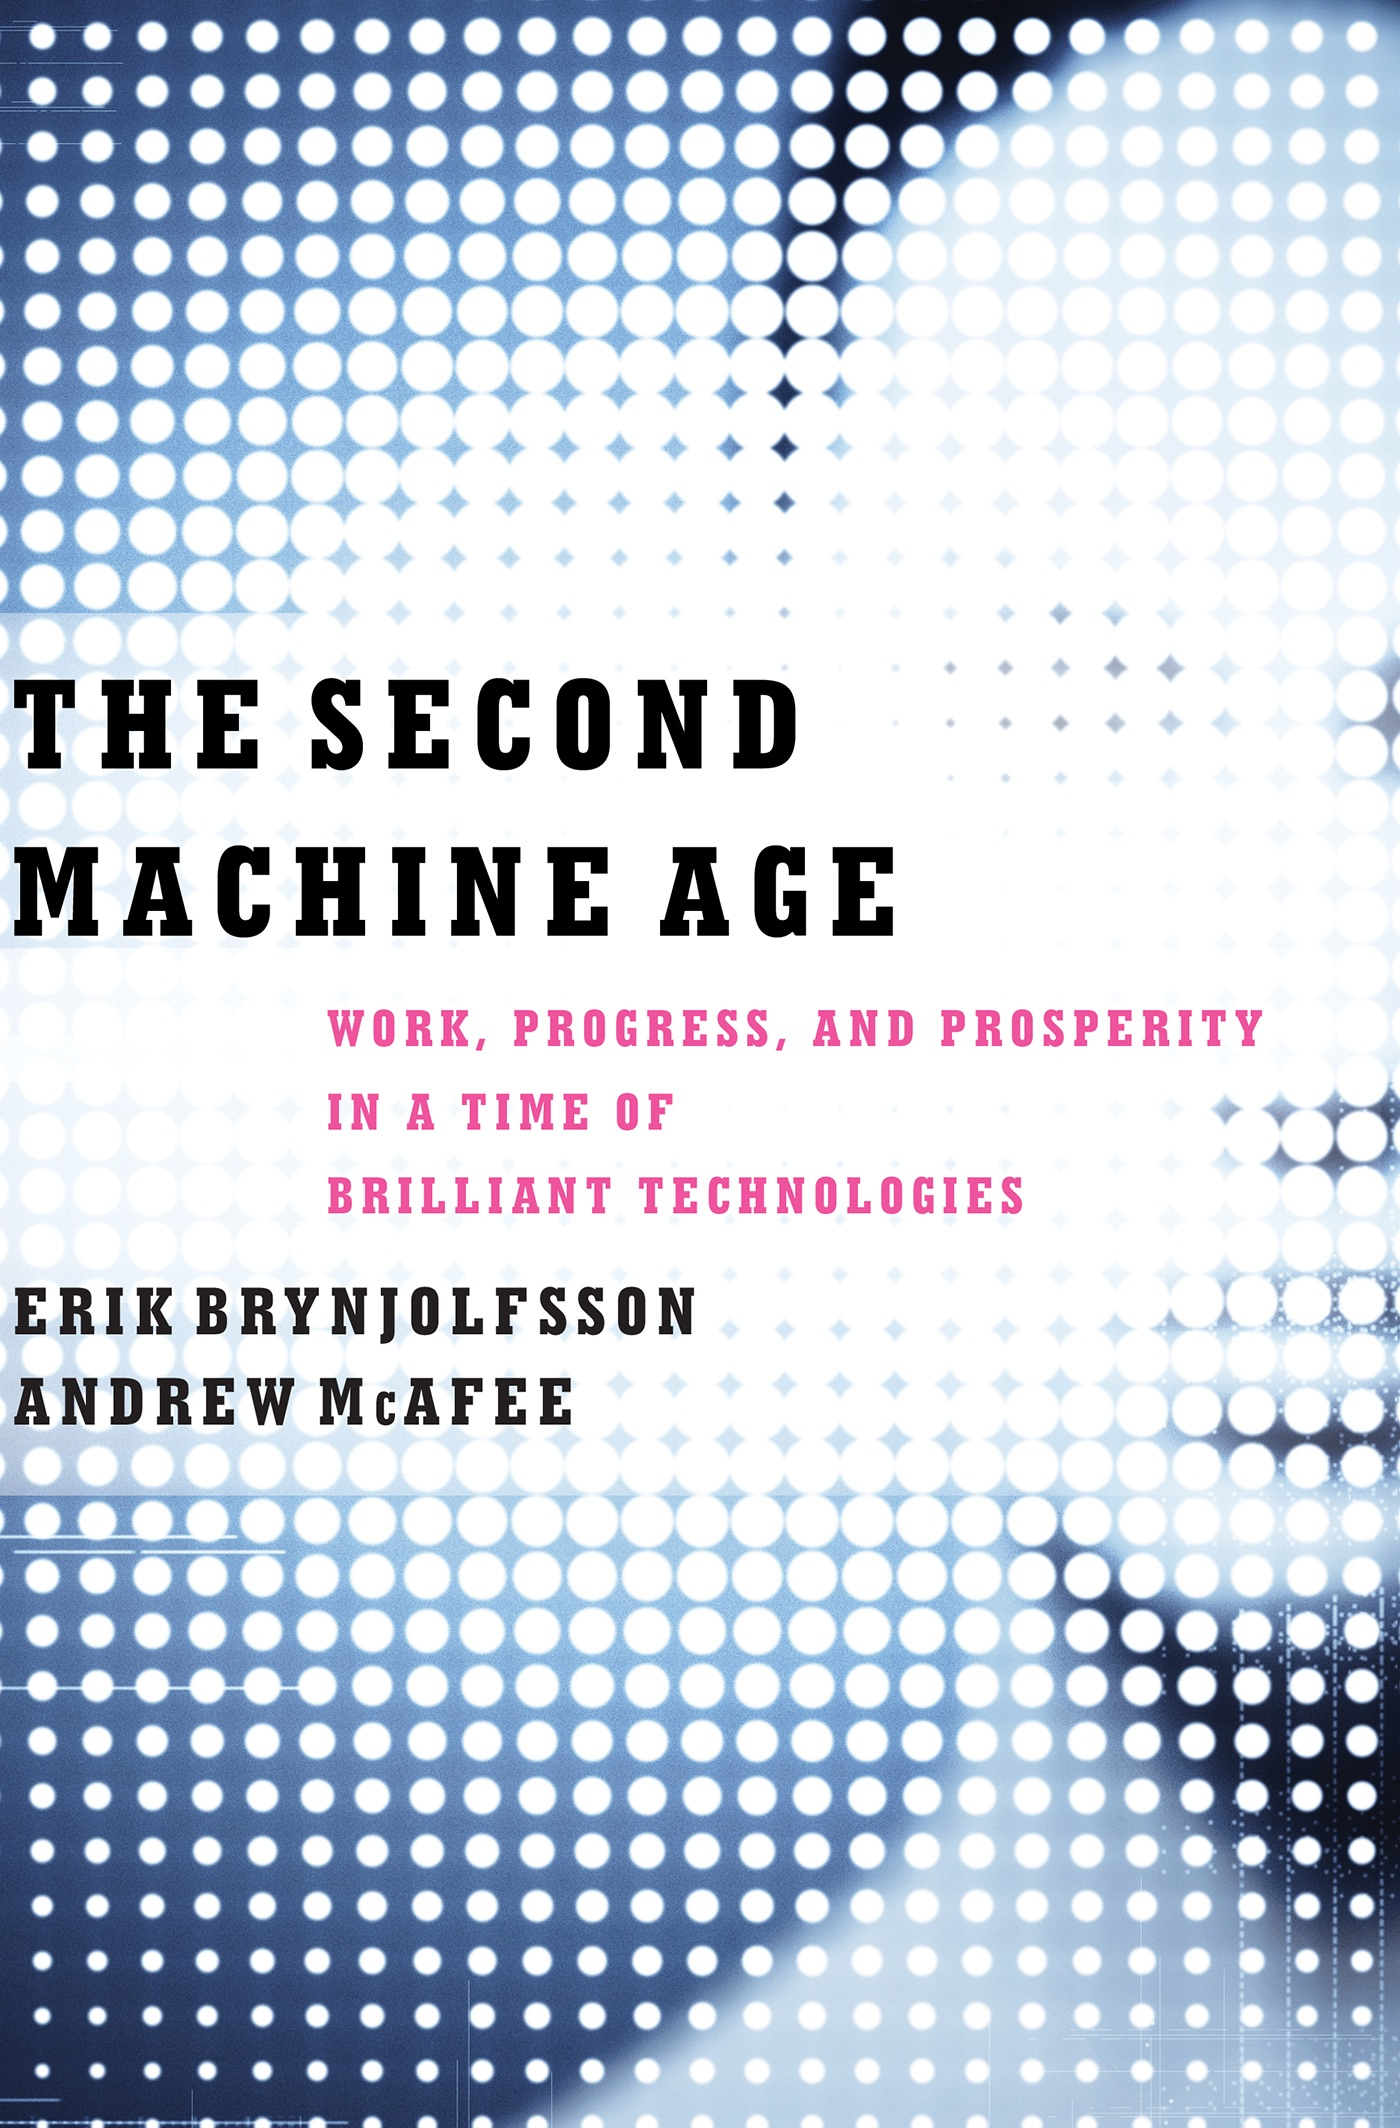 Book Cover of The Second Machine Age